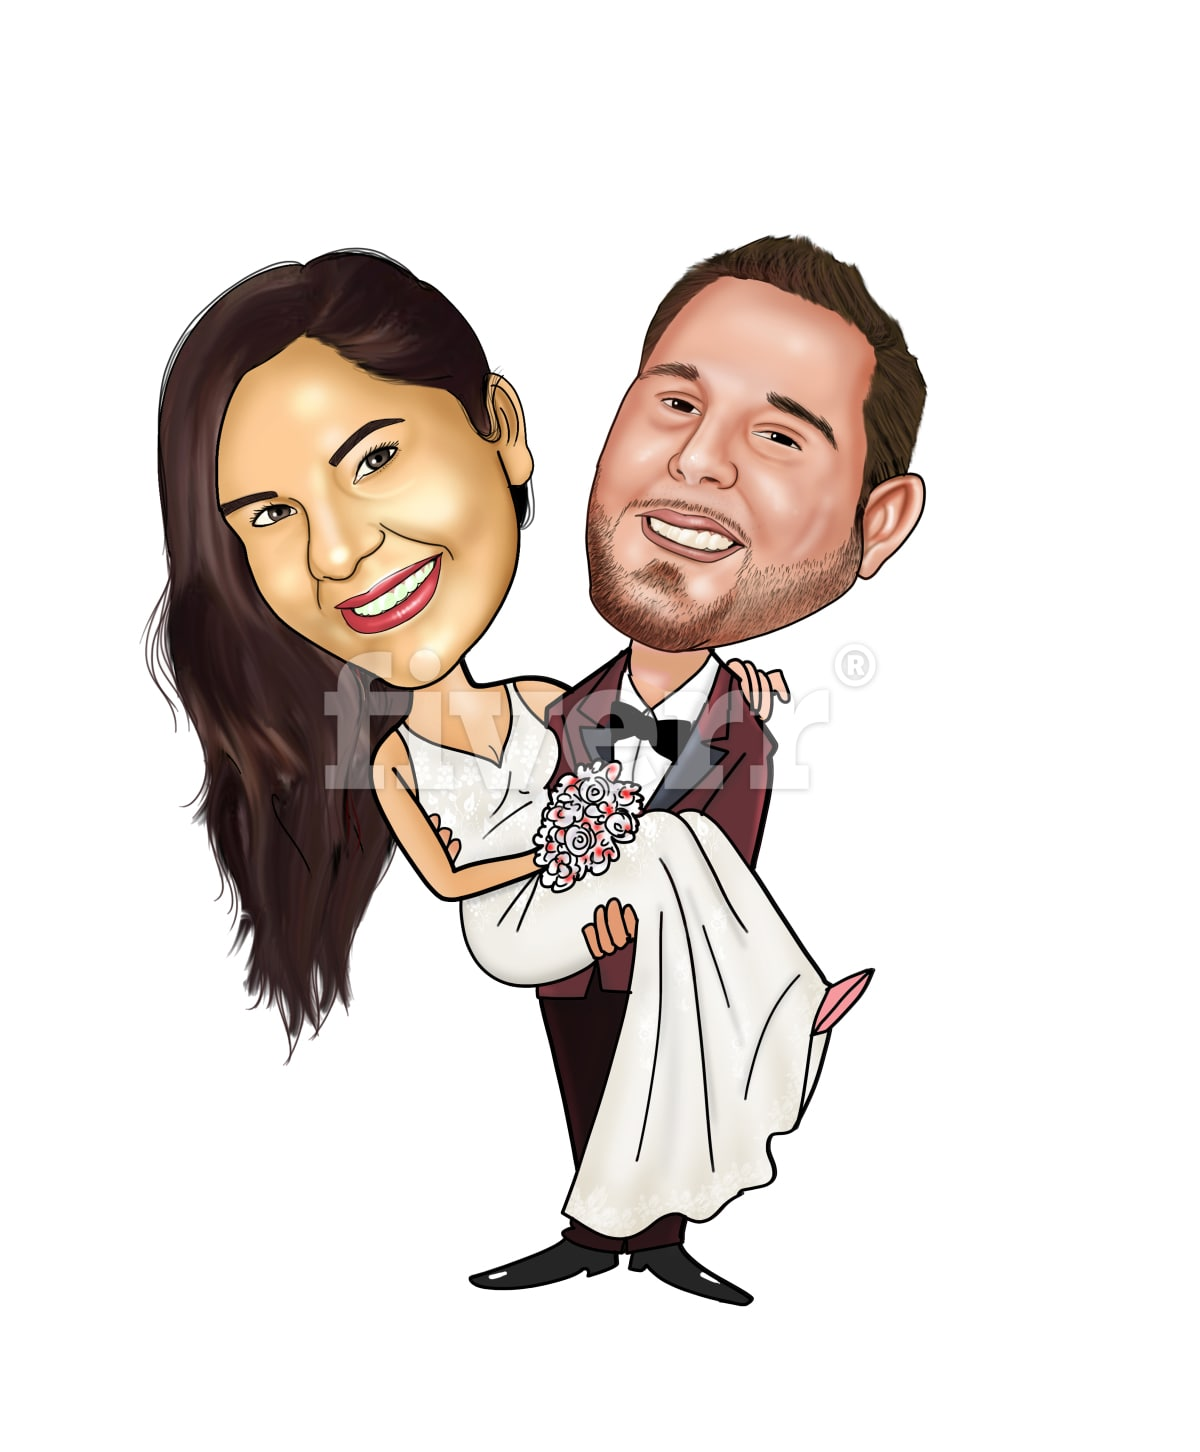 Draw caricature couple and wedding themed by Ryadavpali